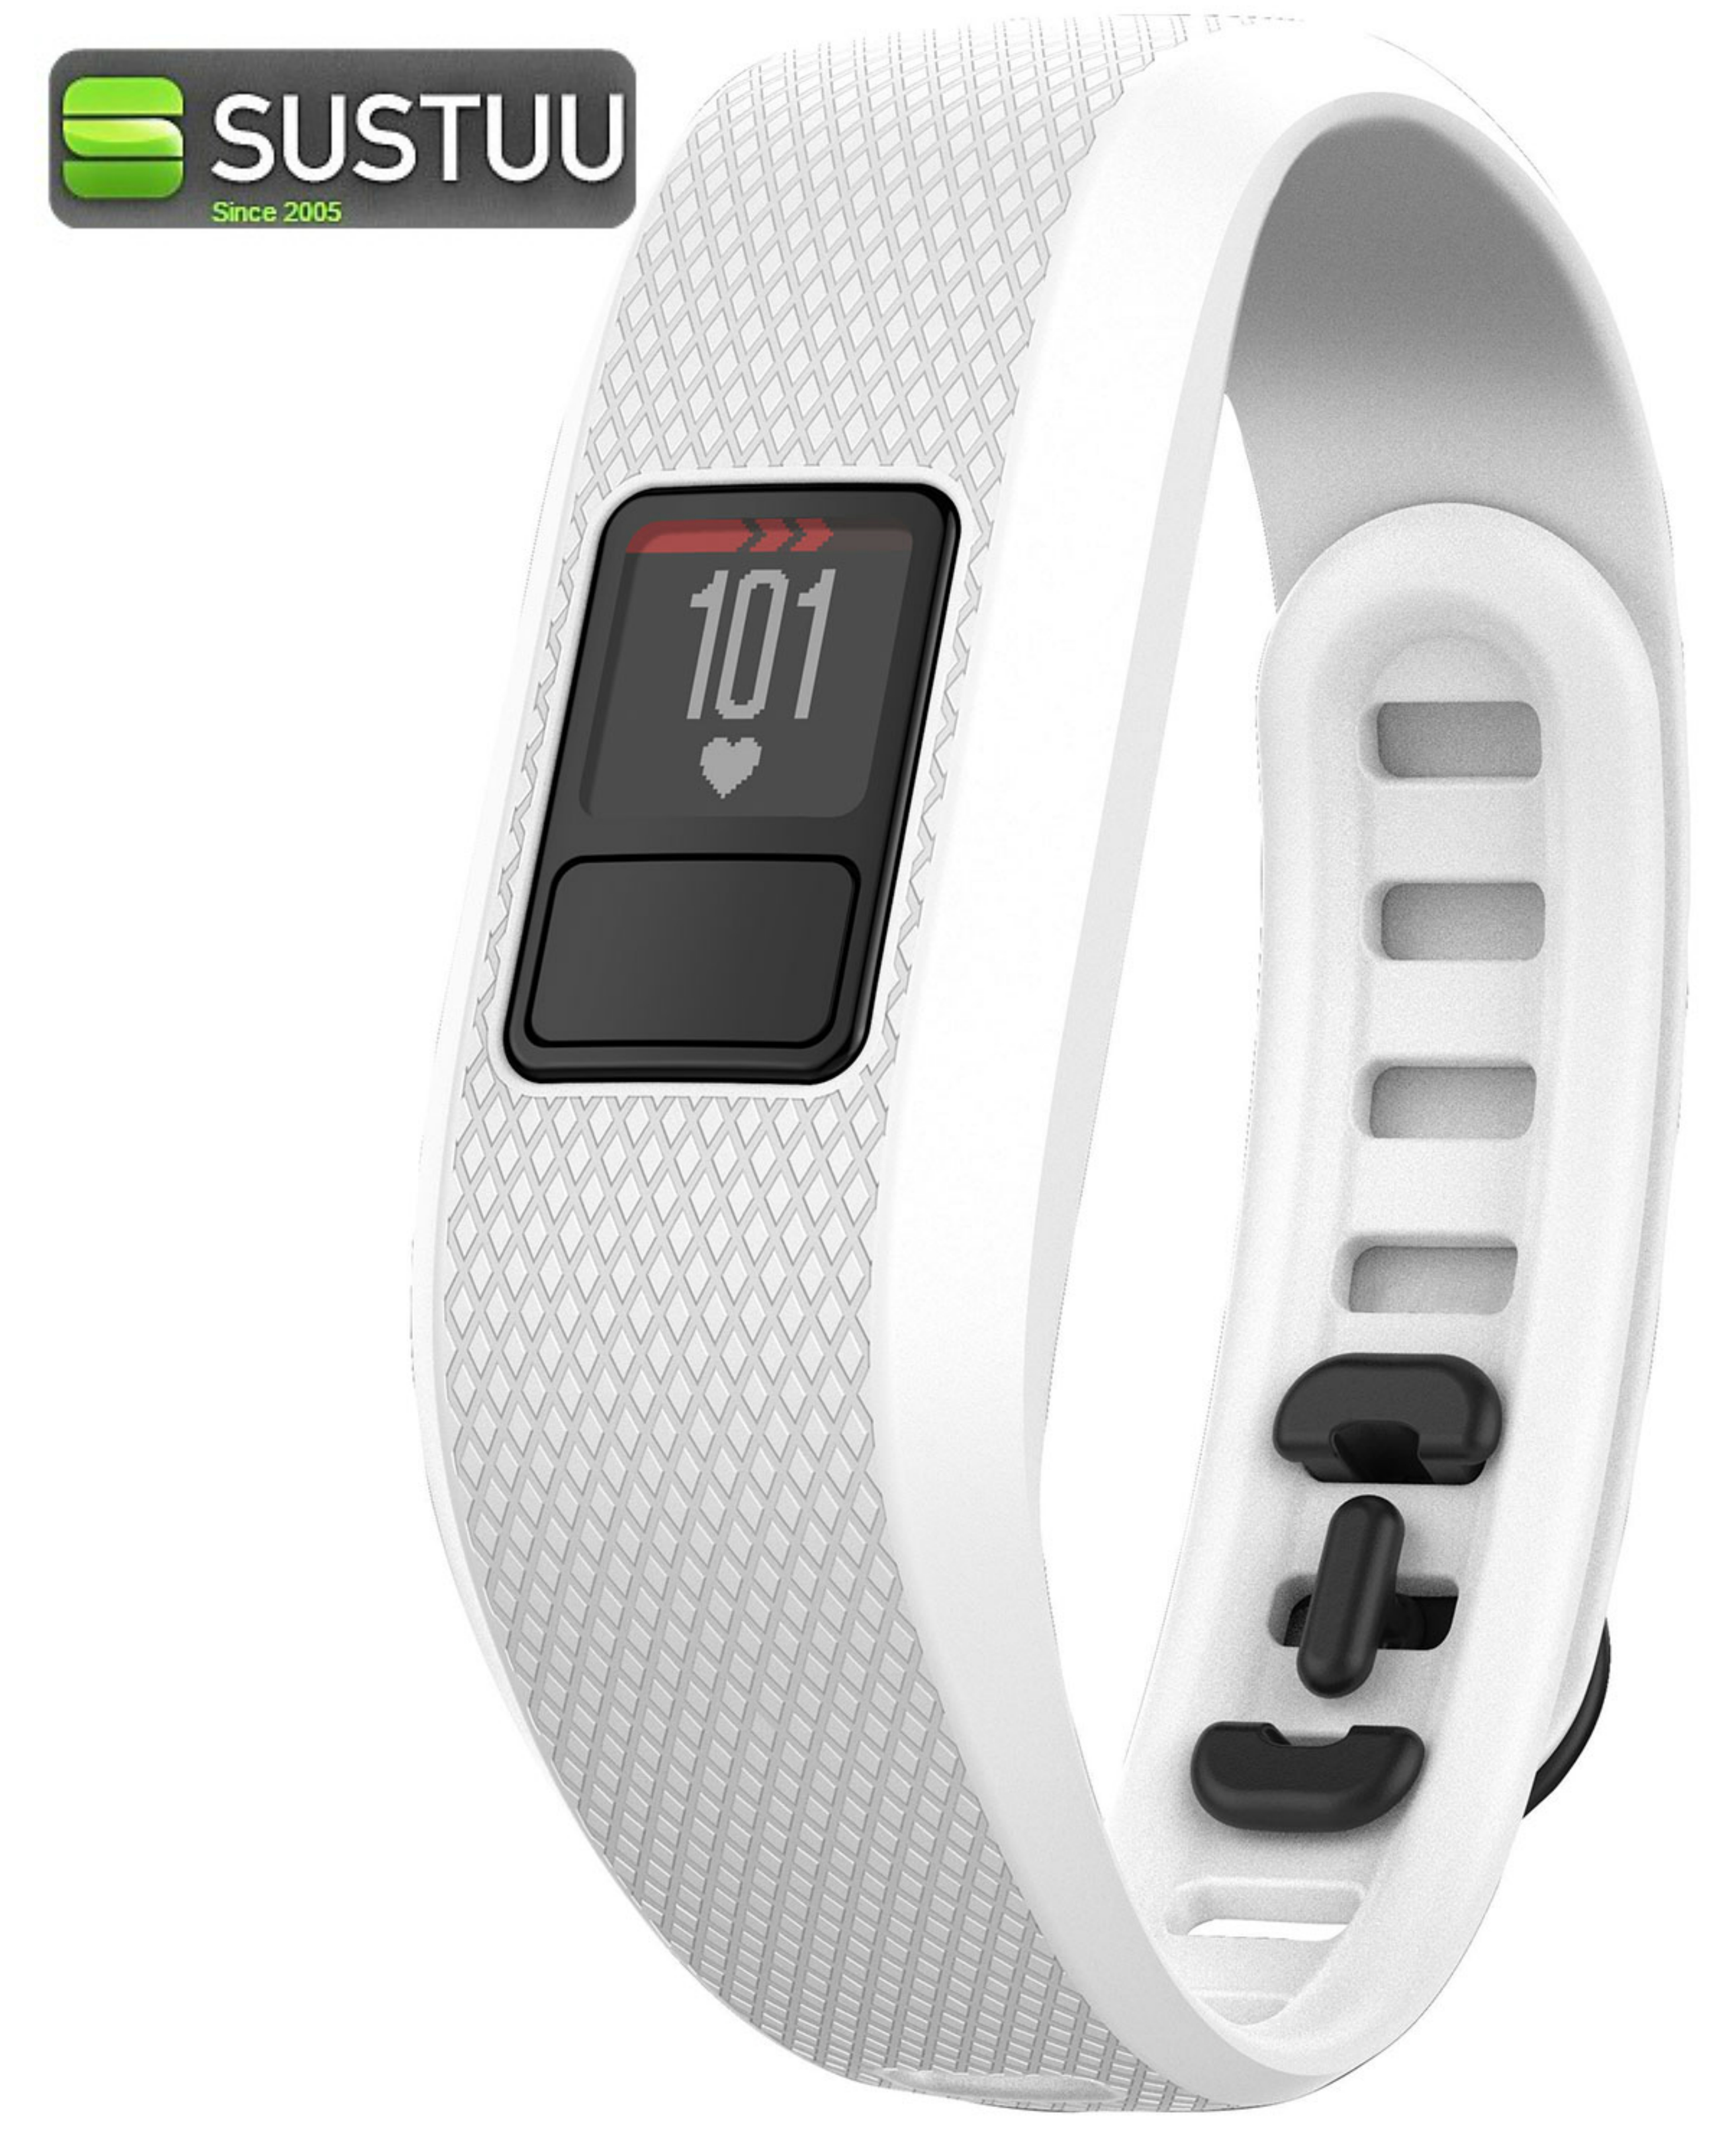 garmin vivofit 3 fitness wrist band activity tracker. Black Bedroom Furniture Sets. Home Design Ideas